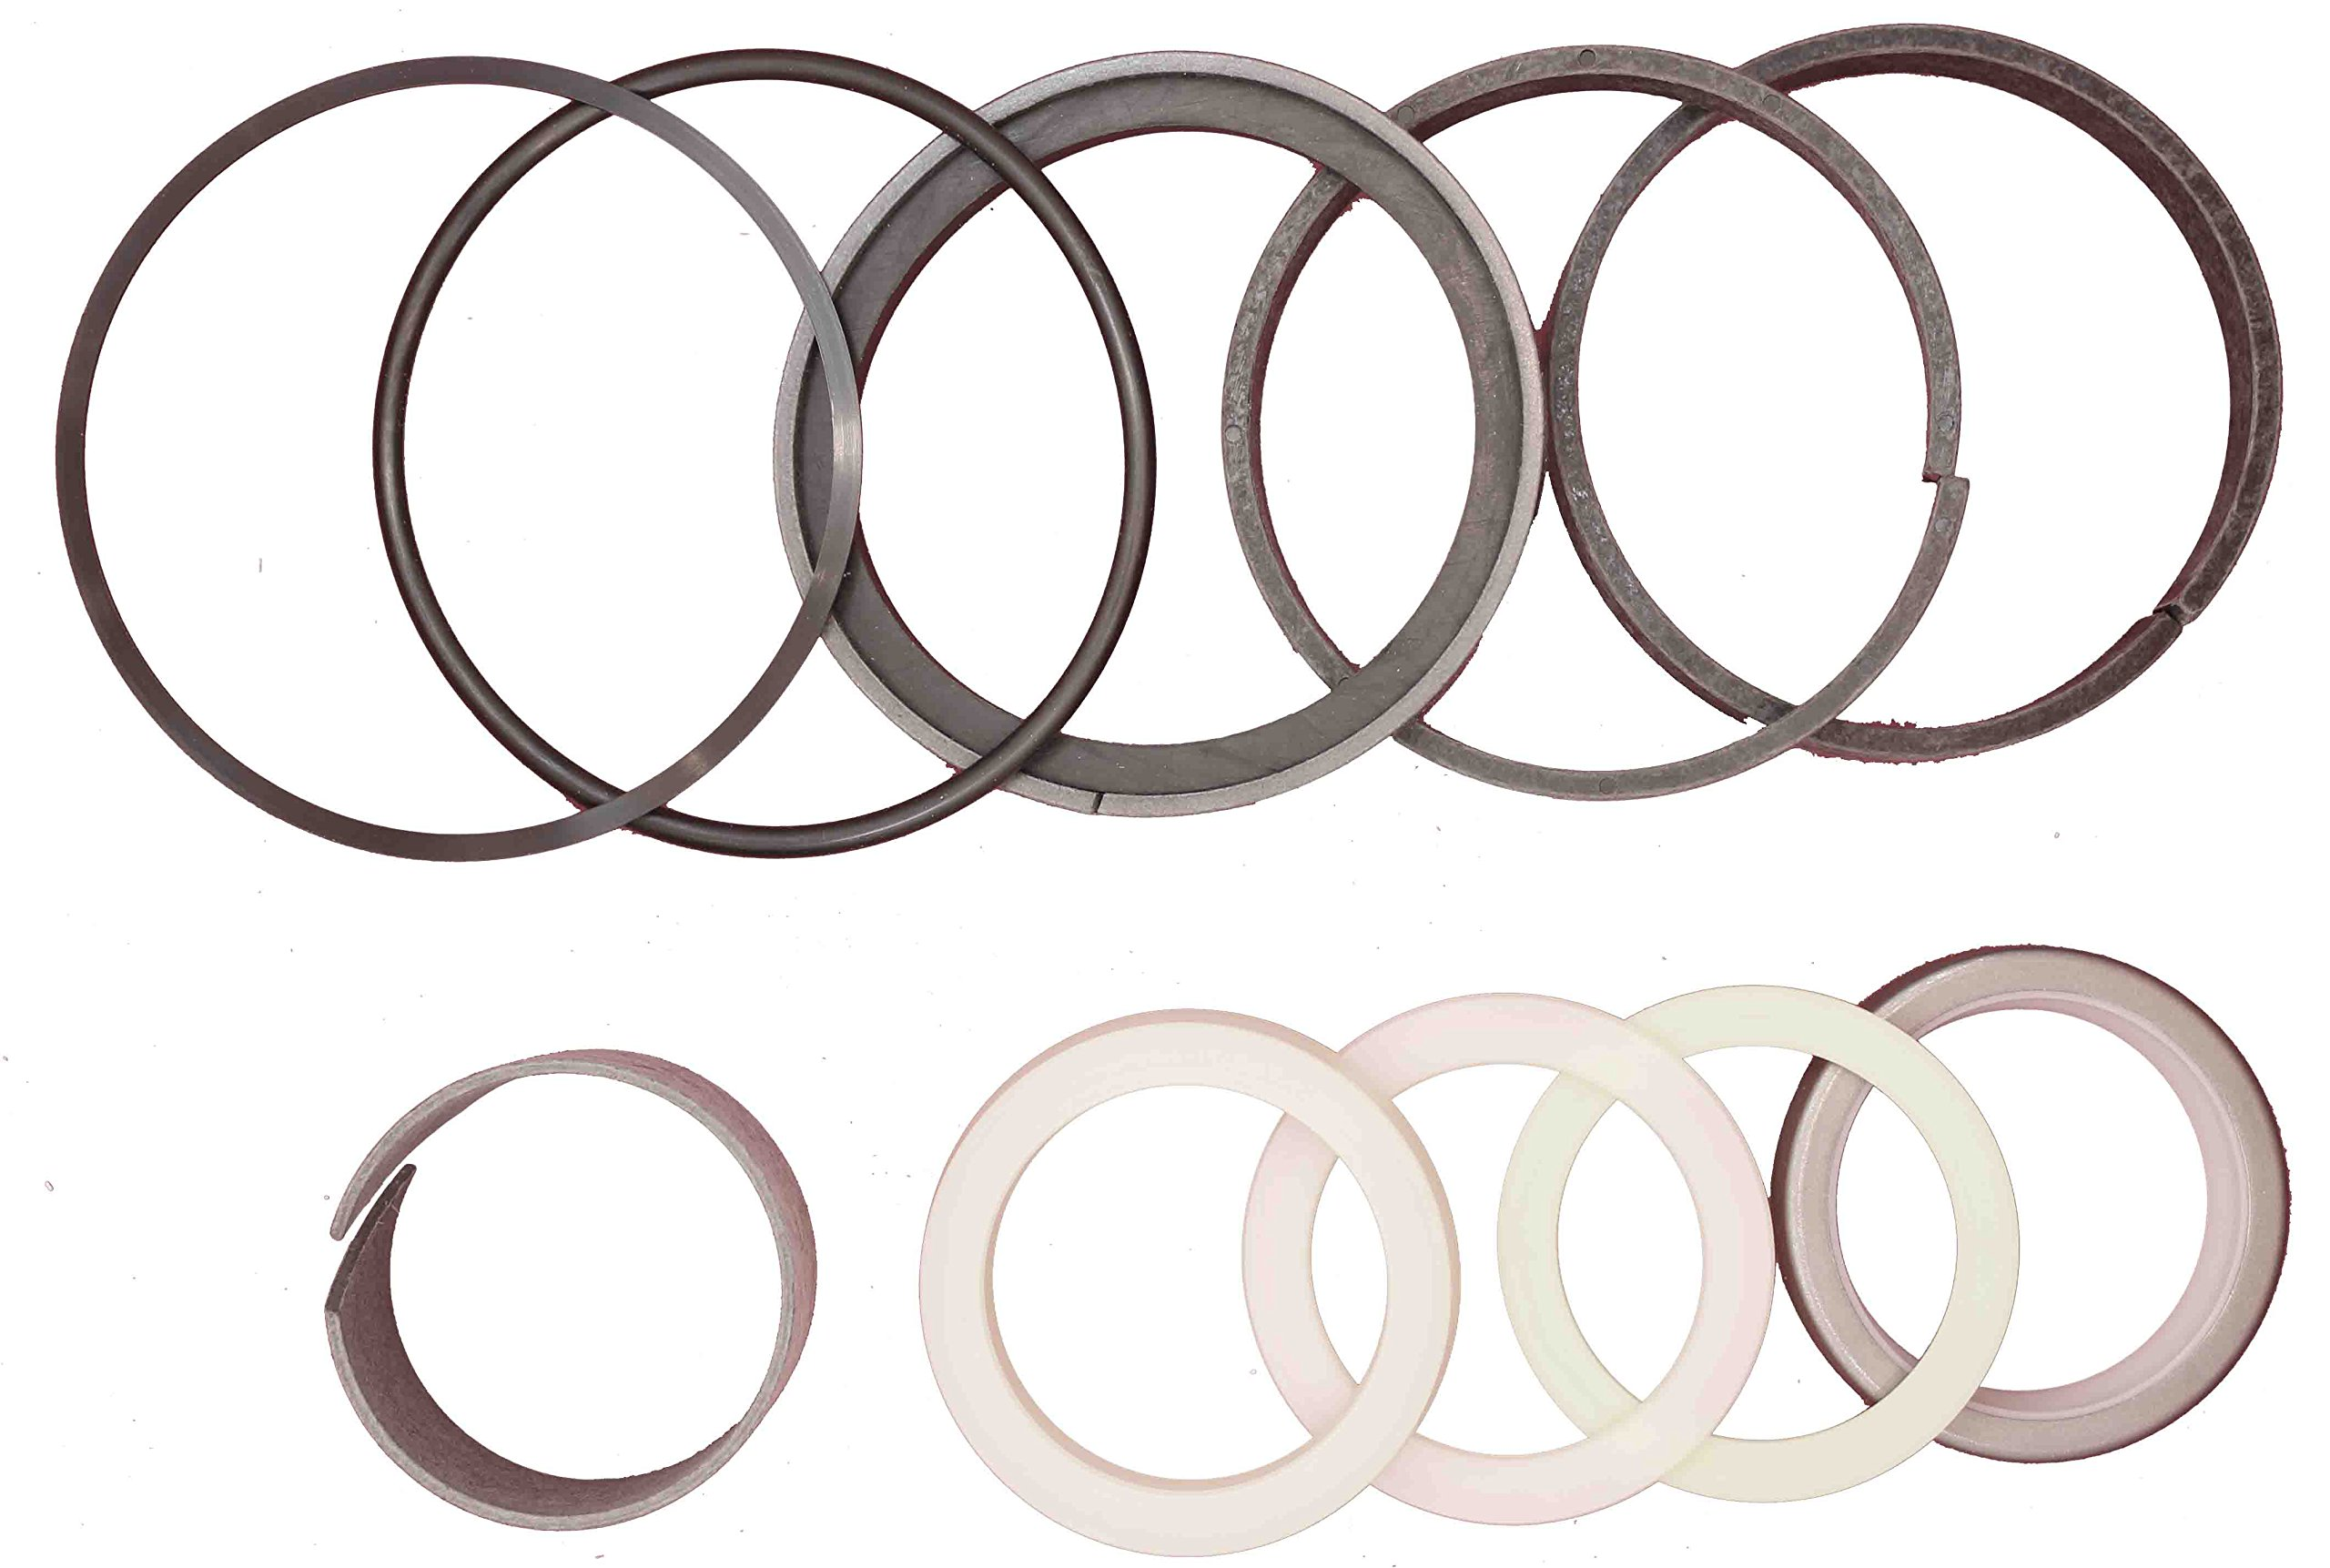 CASE 1543265C1 G105547 HYDRAULIC CYLINDER SEAL KIT